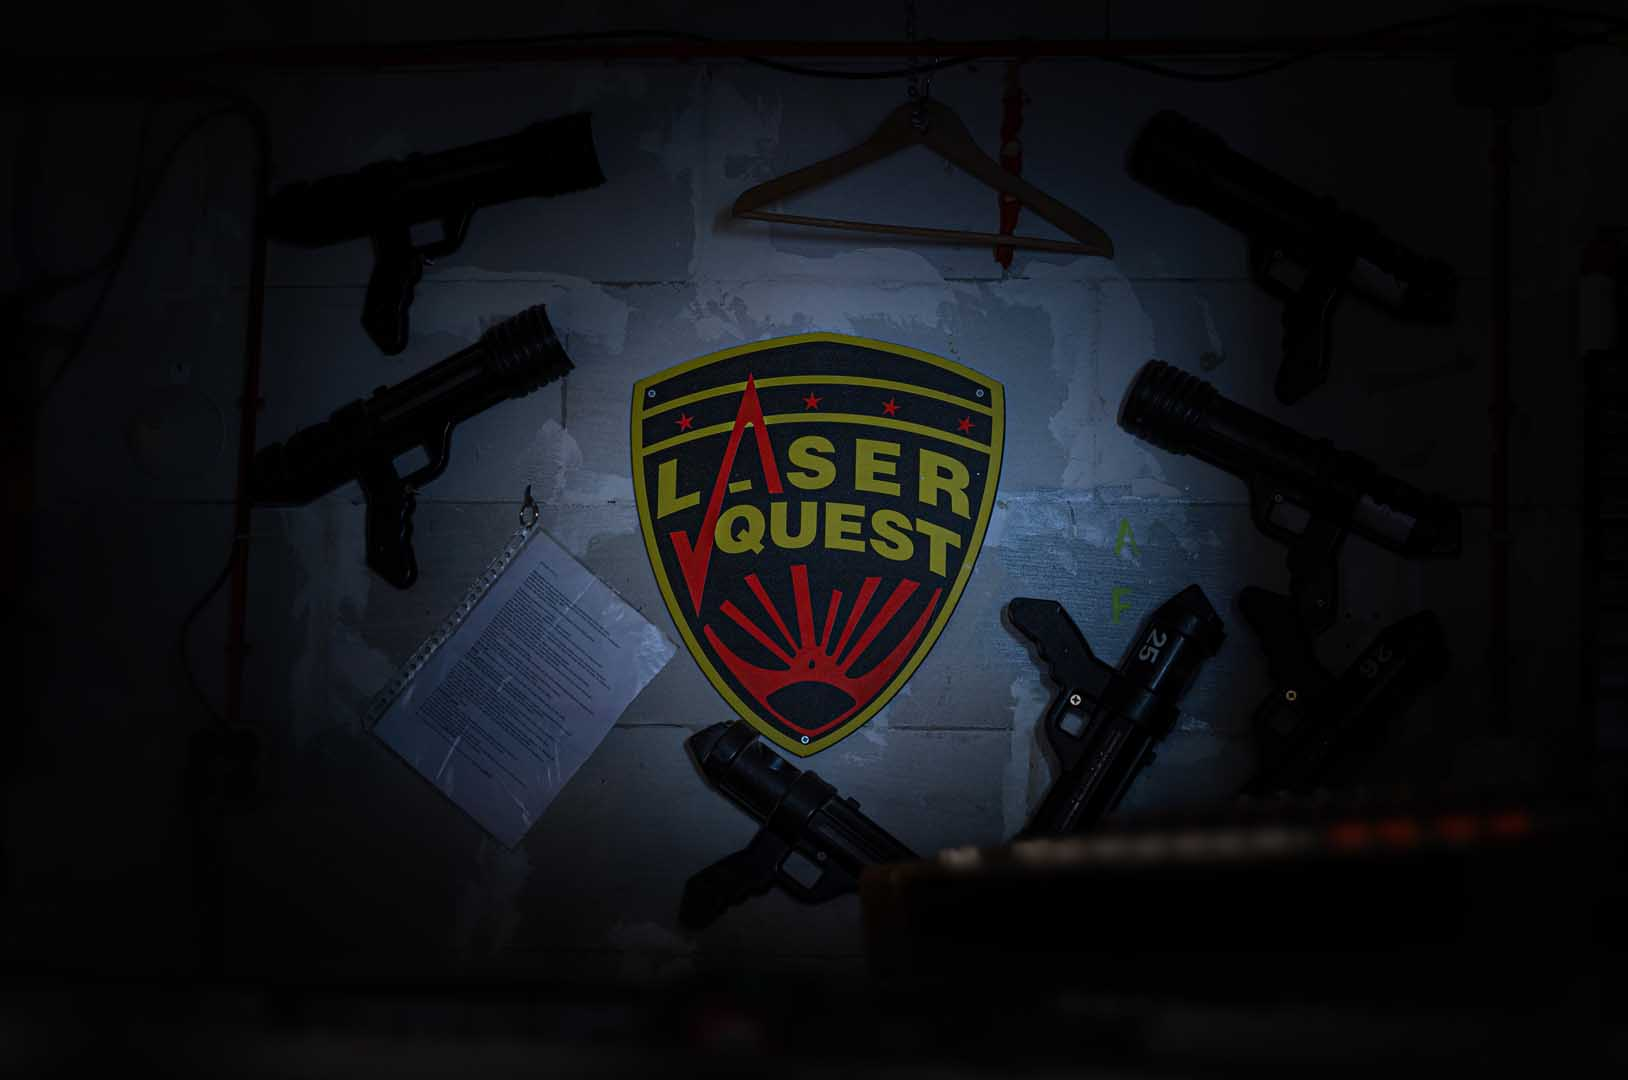 Laserquest logo on wall